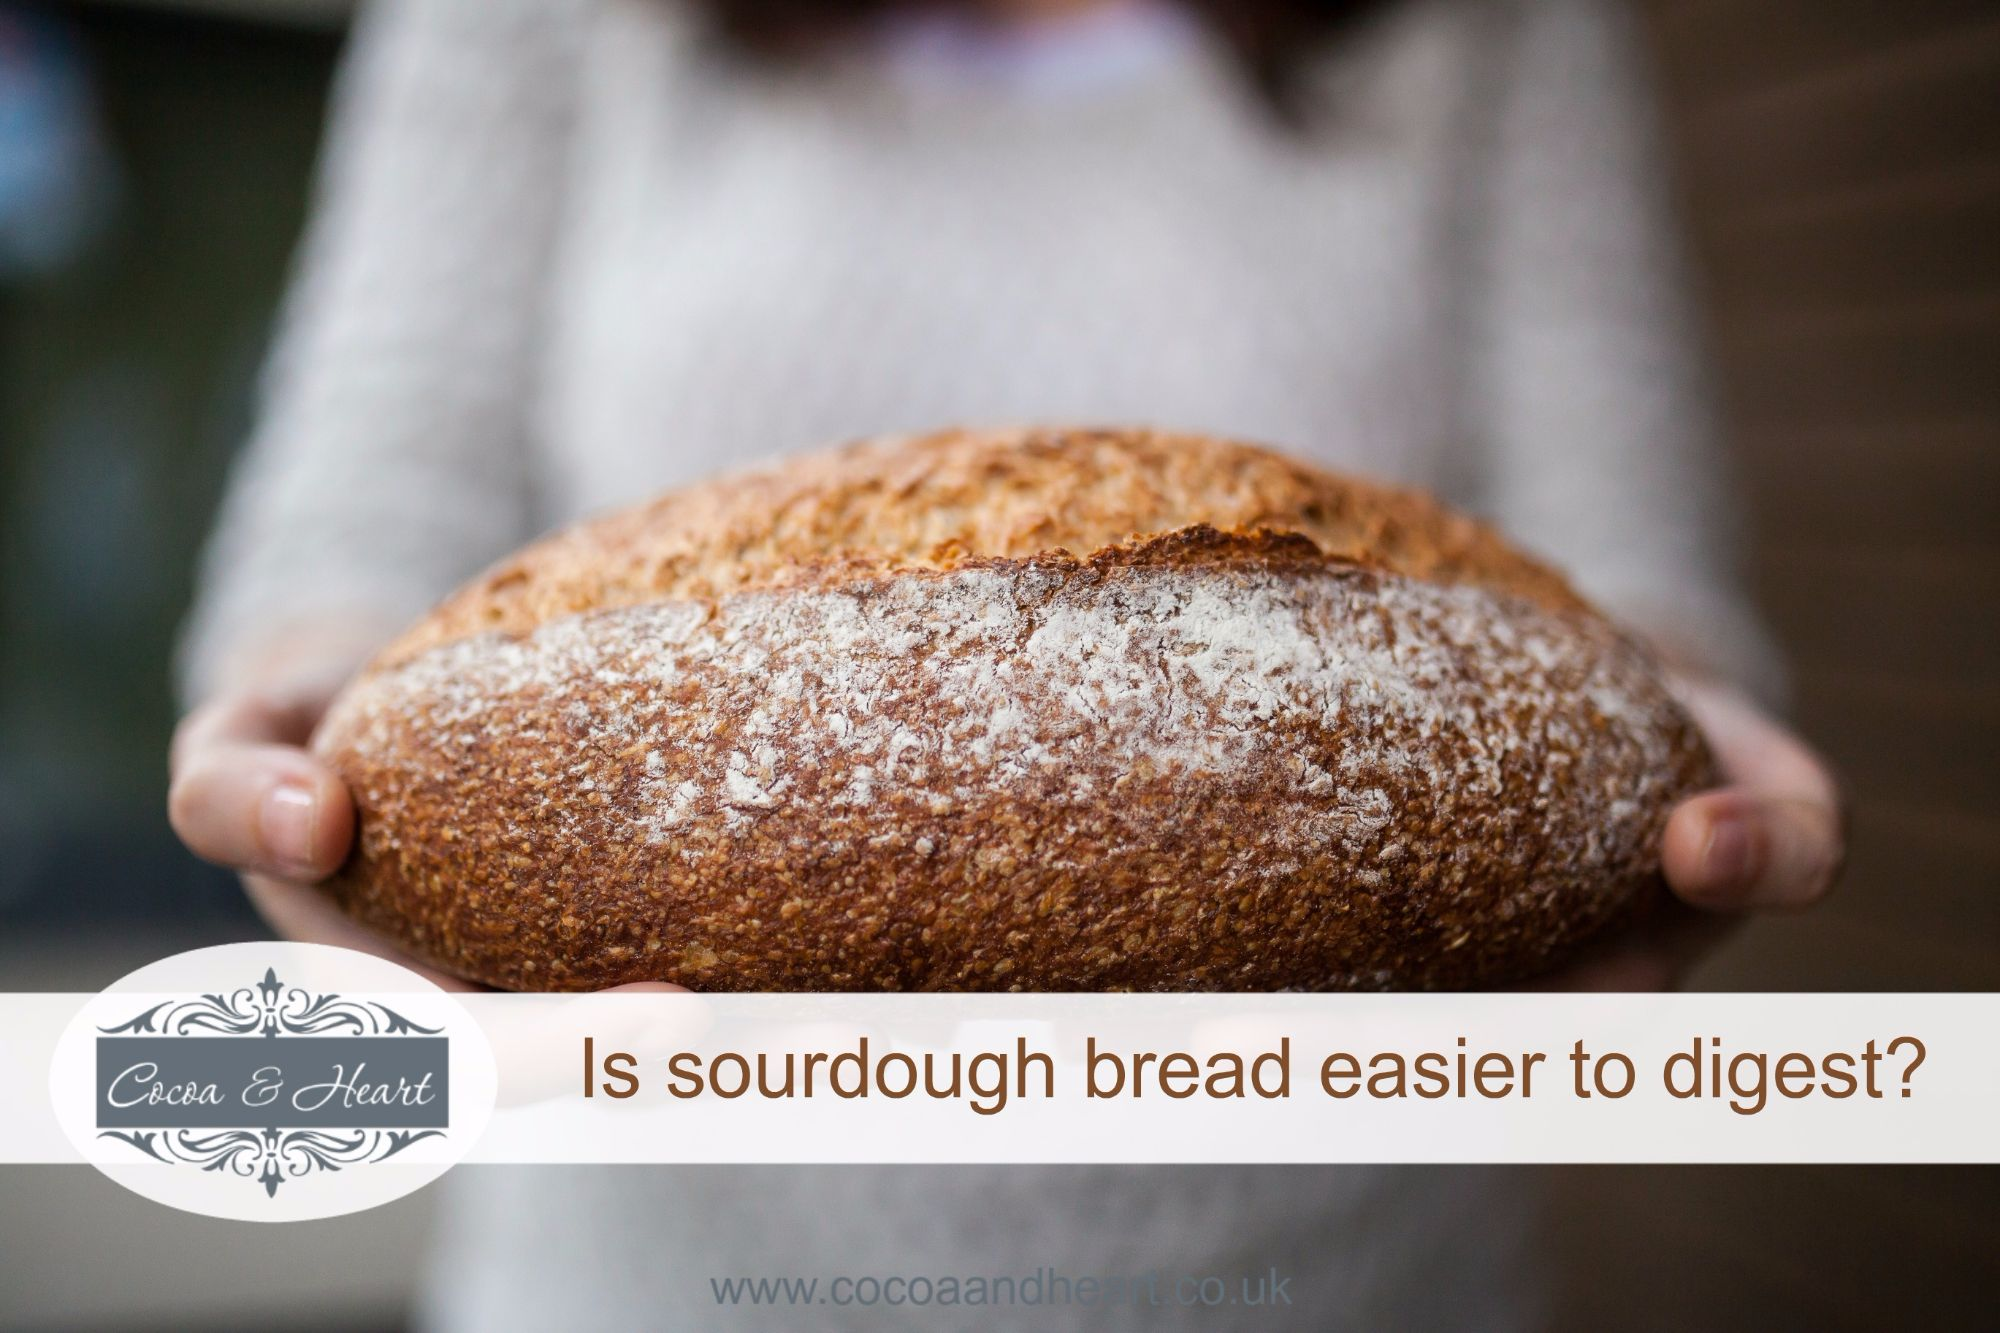 Is sourdough bread easier to digest?